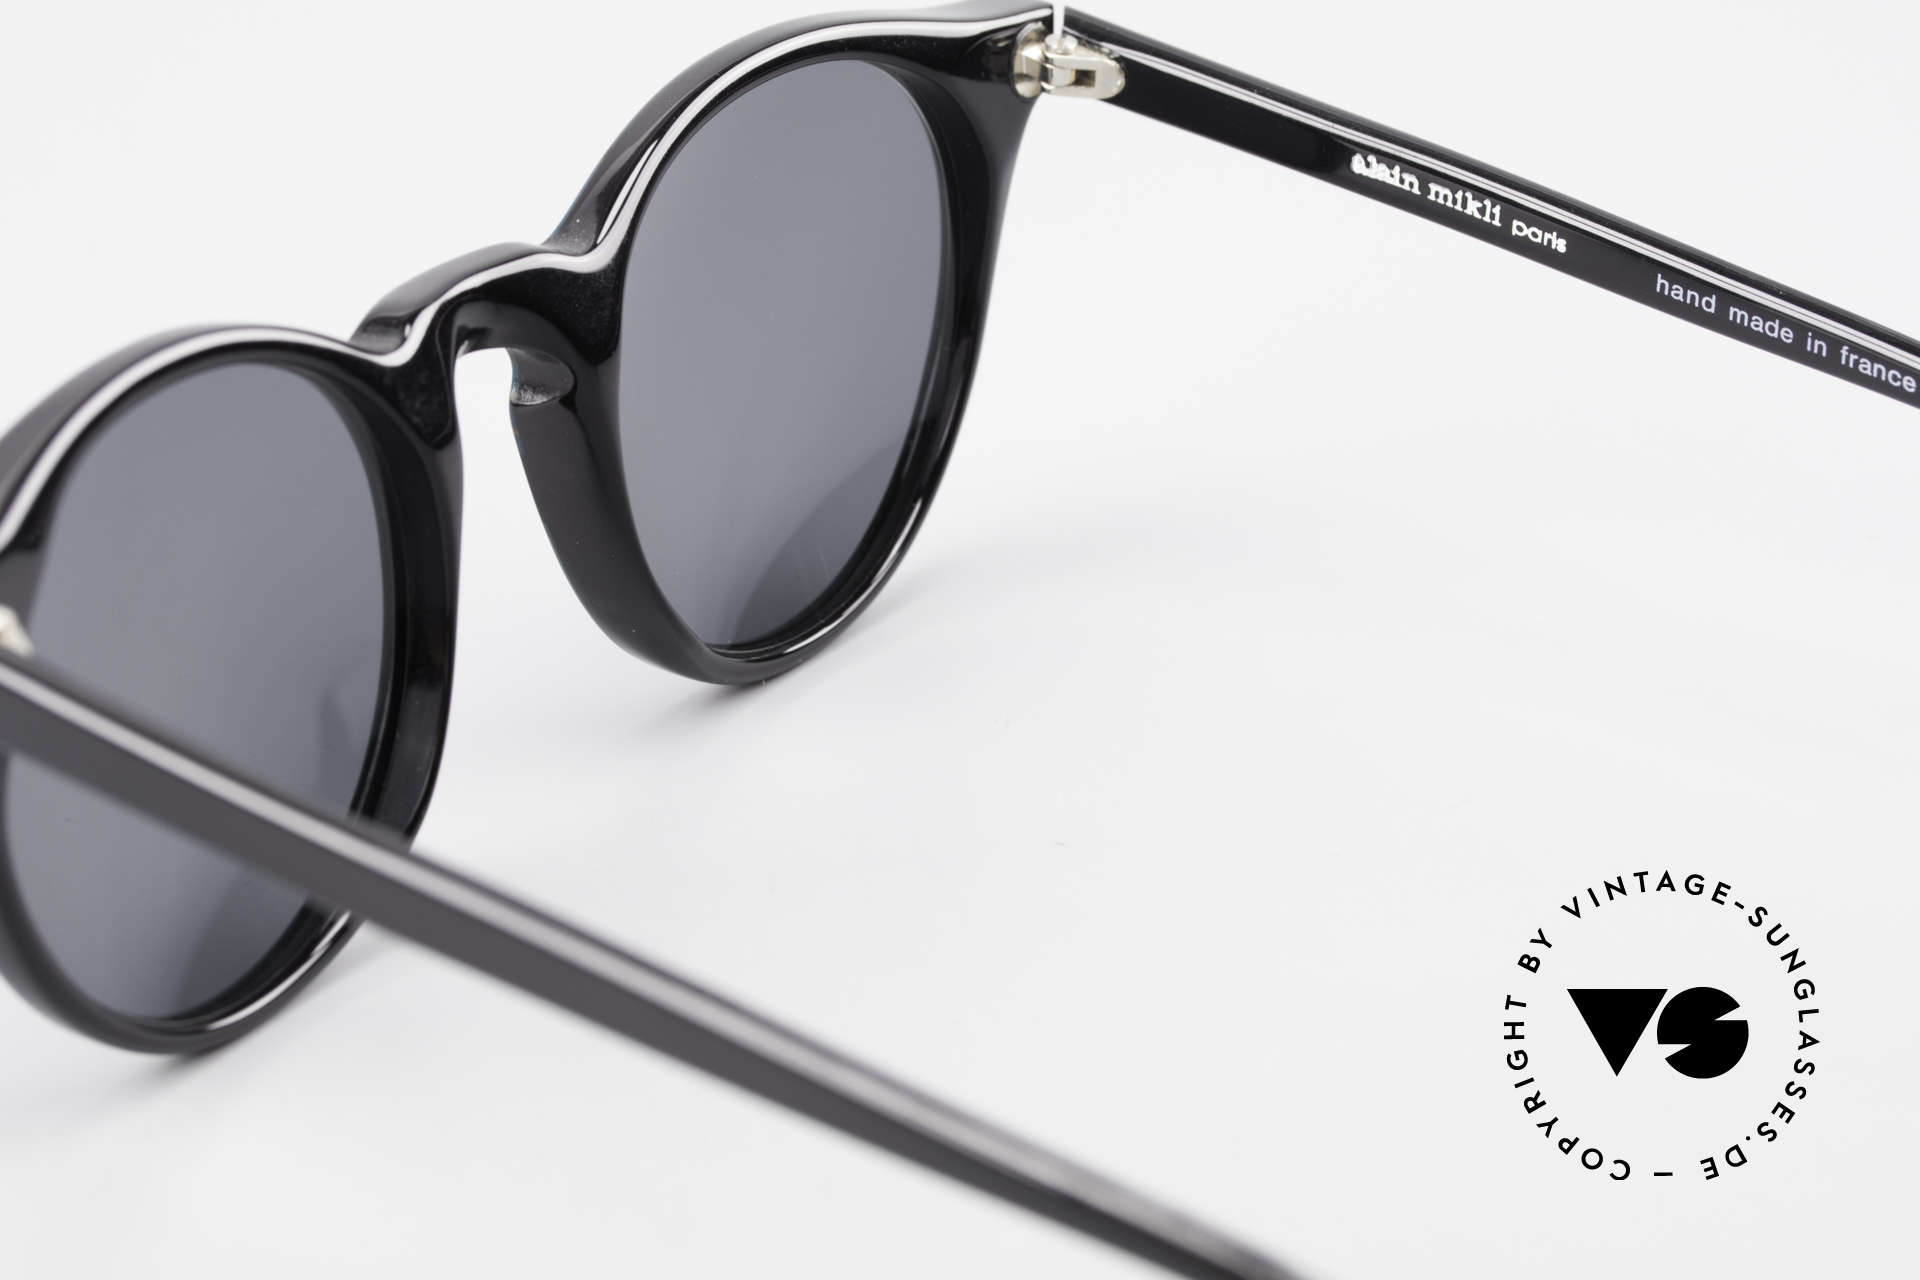 Alain Mikli 034 / 885 Panto Designer Sunglasses, the sun lenses can be replaced with prescriptions, Made for Men and Women